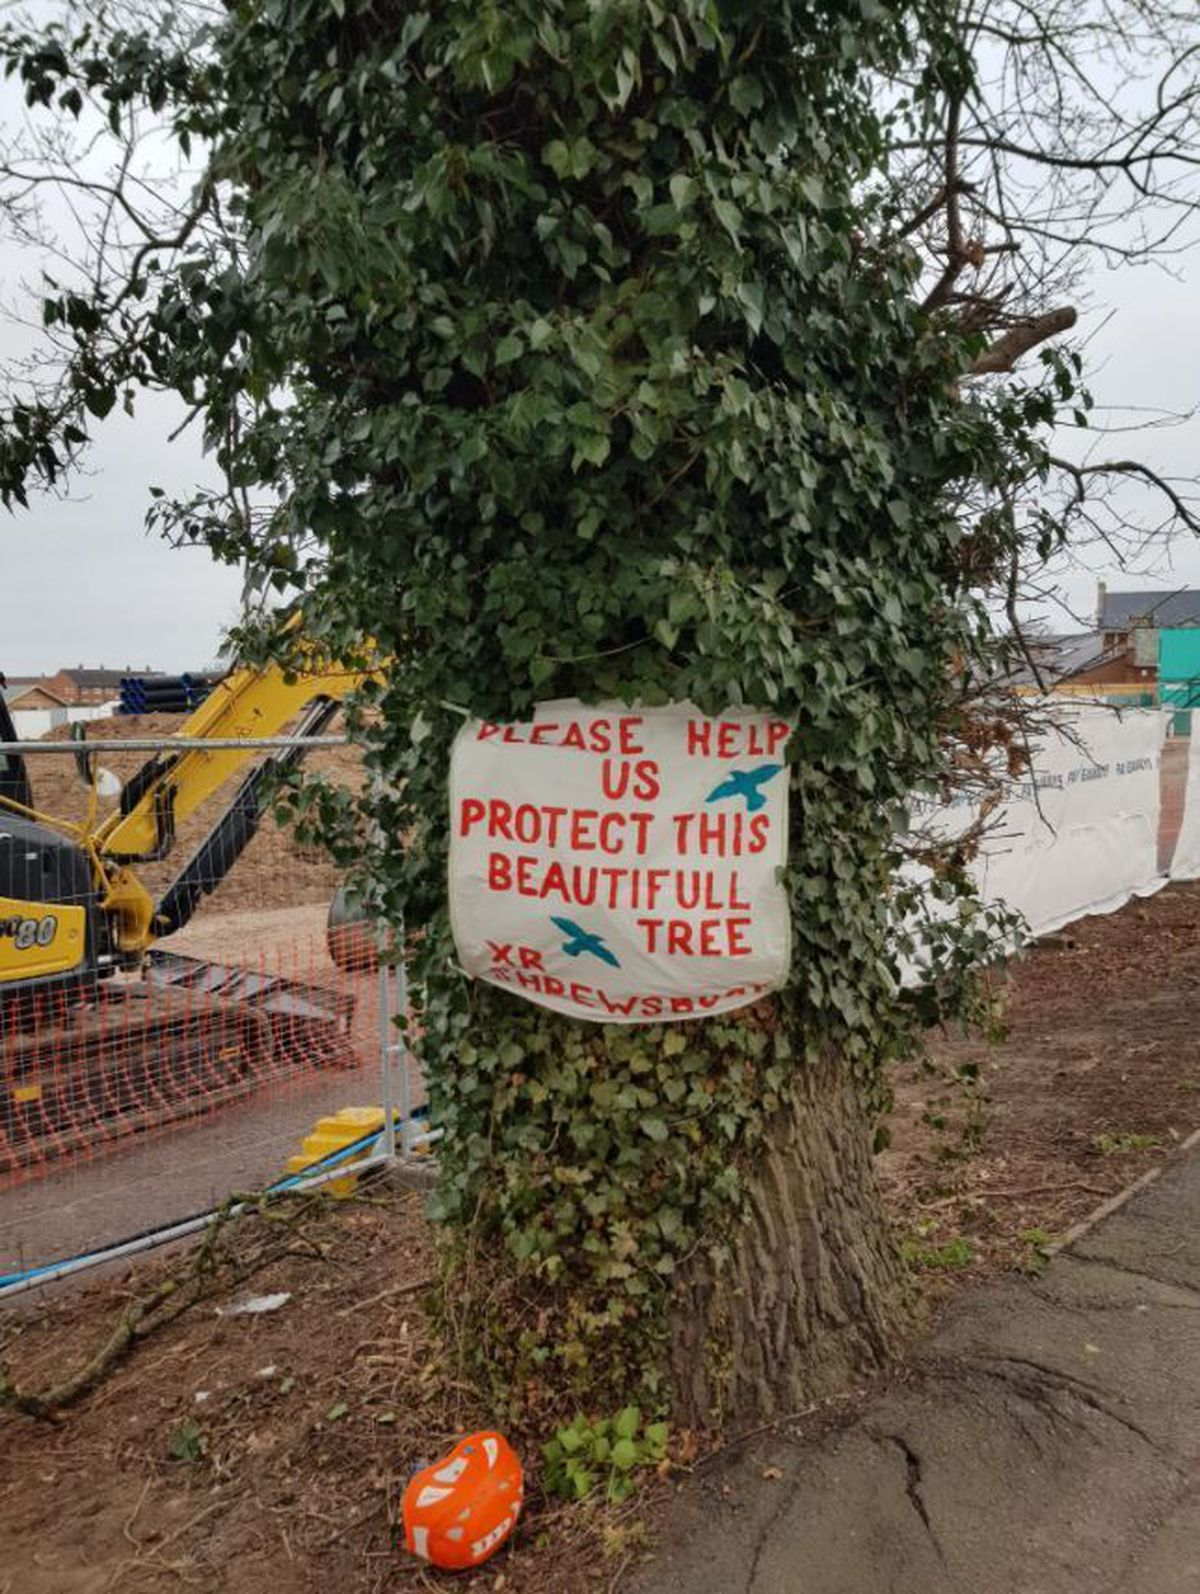 A sign on the tree in Harlescott